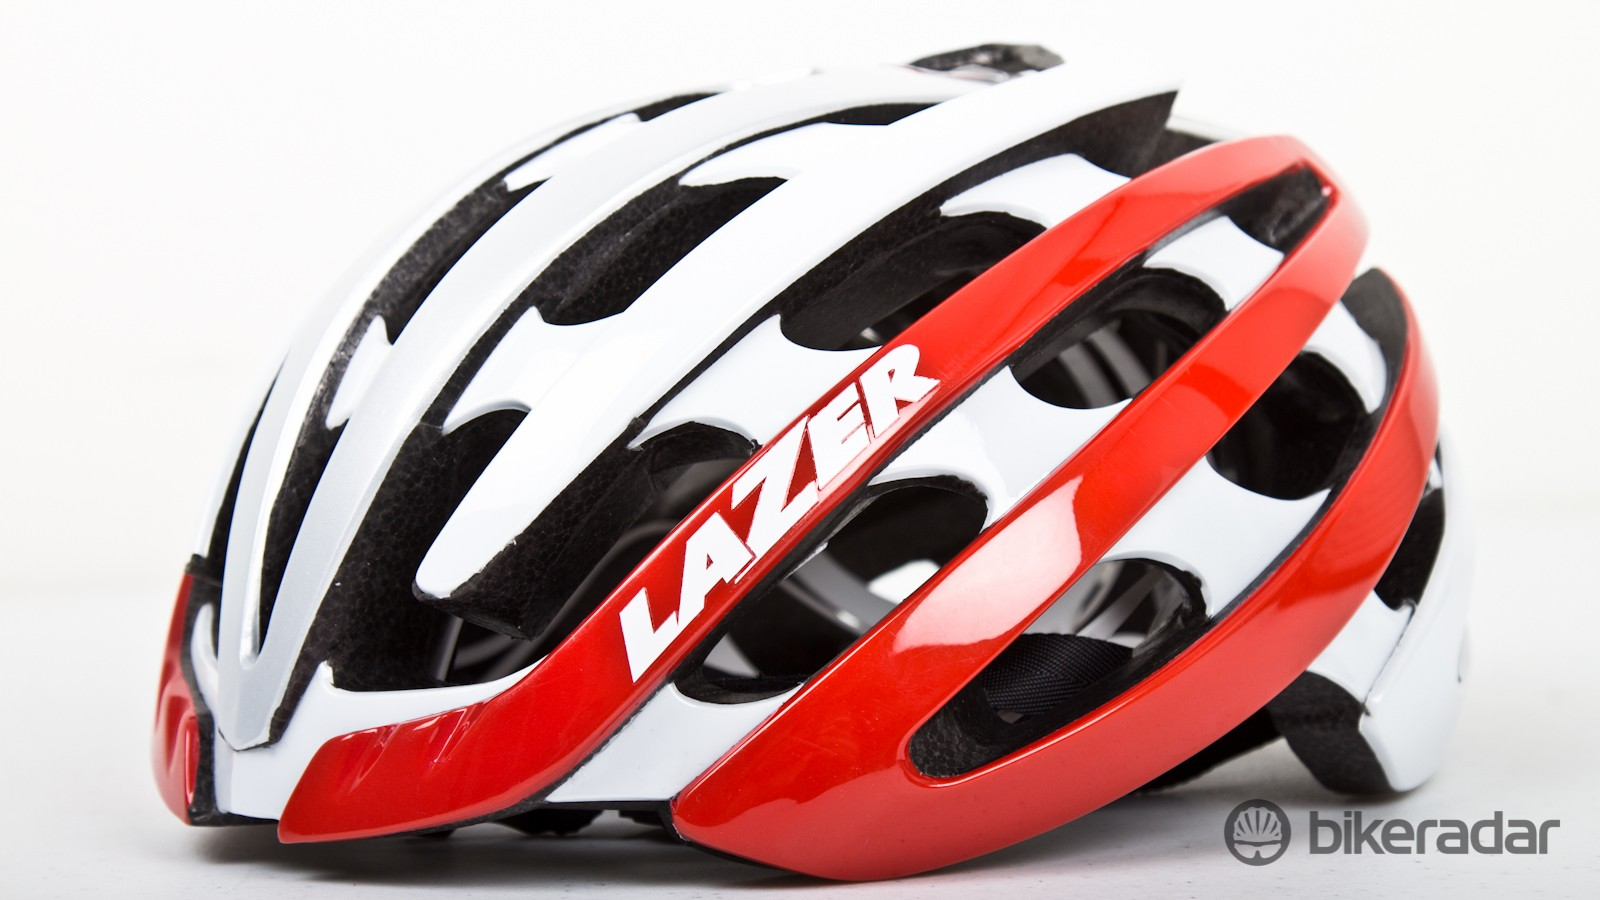 The Z1 - a new top-of-the-range helmet from Lazer